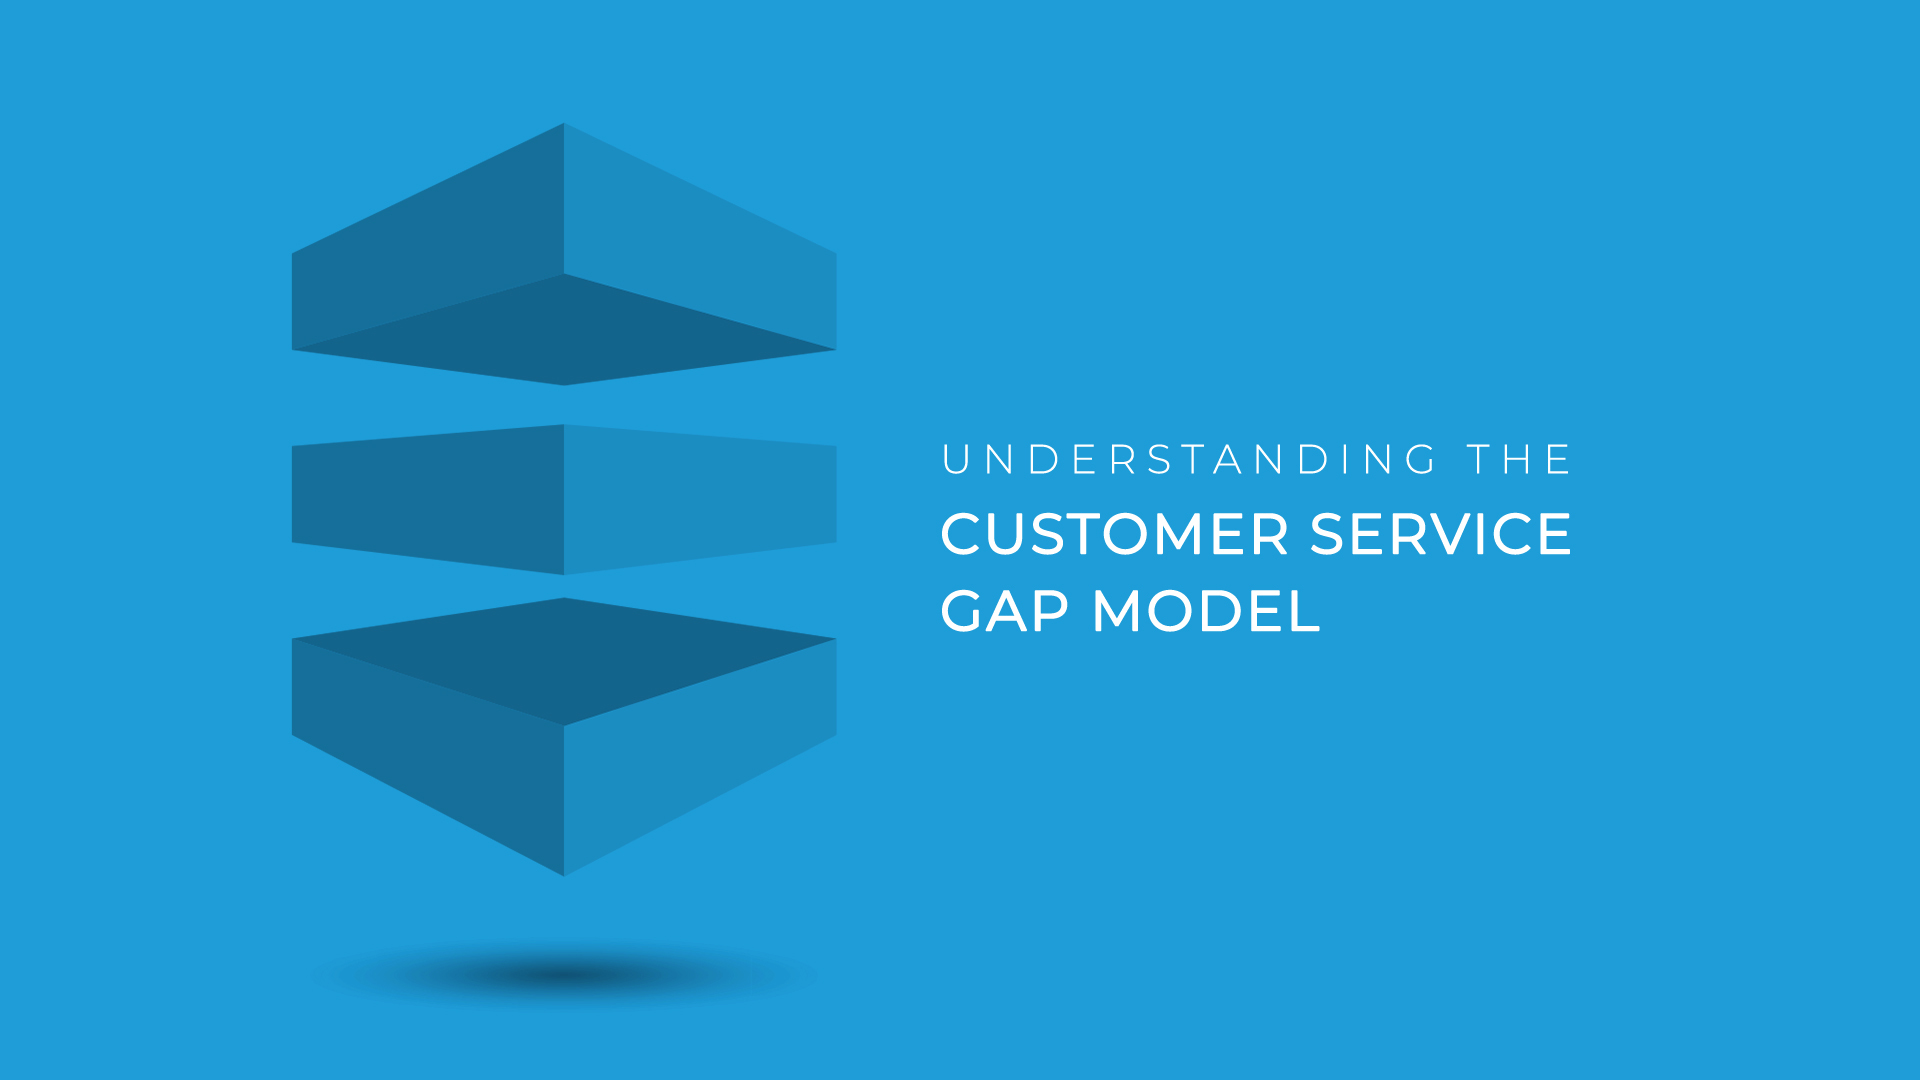 Understanding the Customer Service Gap Model